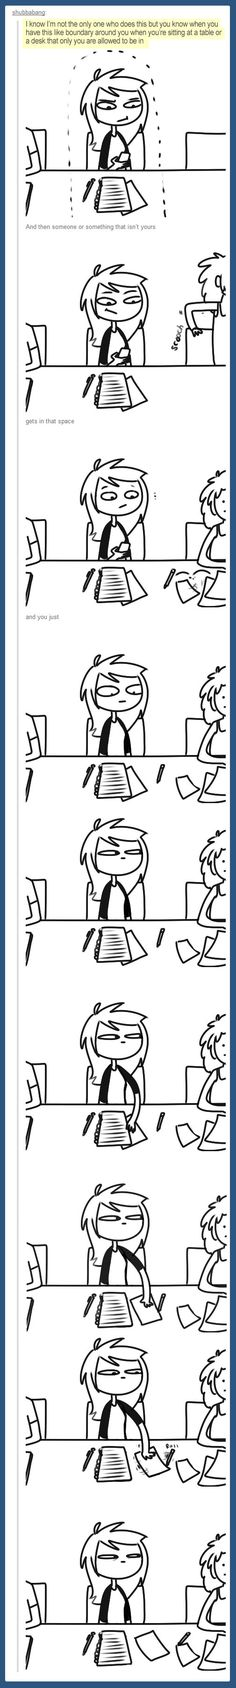 -_- THE FACE XD YES